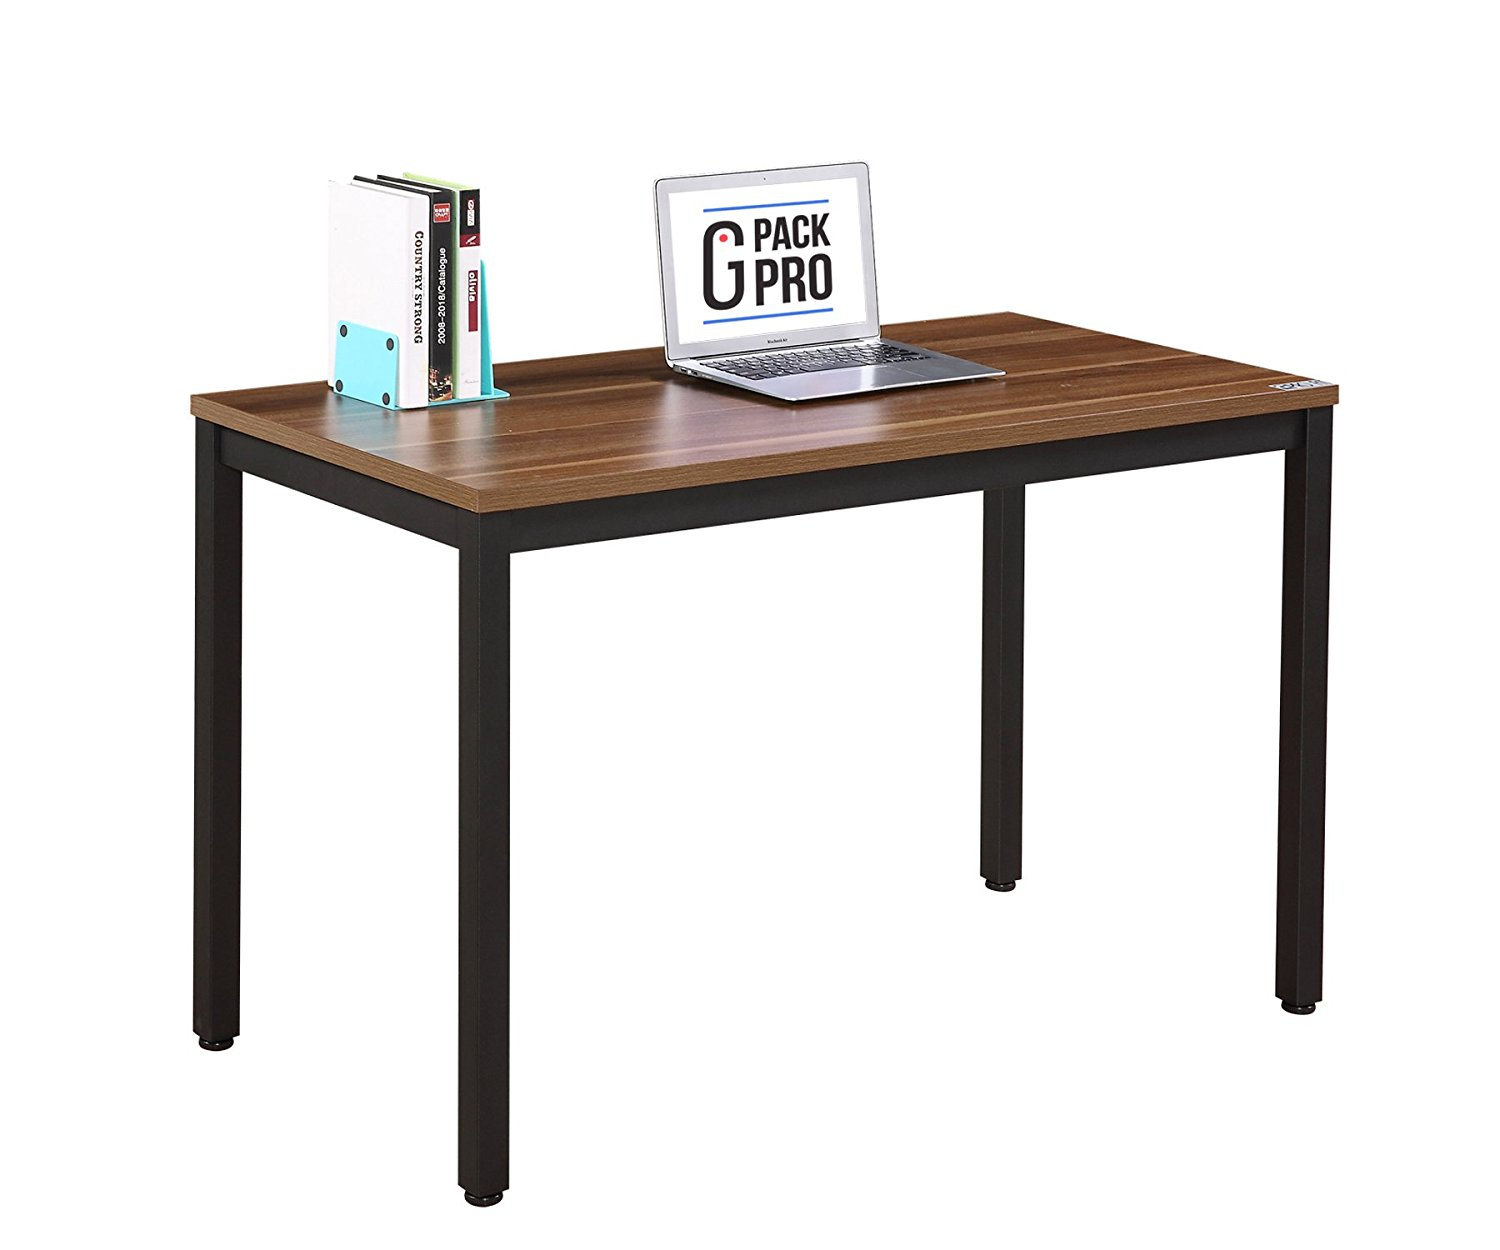 """G-Pack Pro Home & Office Computer Desk 55 inch – Adjustable Working, Secretary, Reception, Writing & Conference Table Furniture – Wood Panel With Glossy Finish & Sturdy Metal Frame (55"""", Dark Walnut)"""